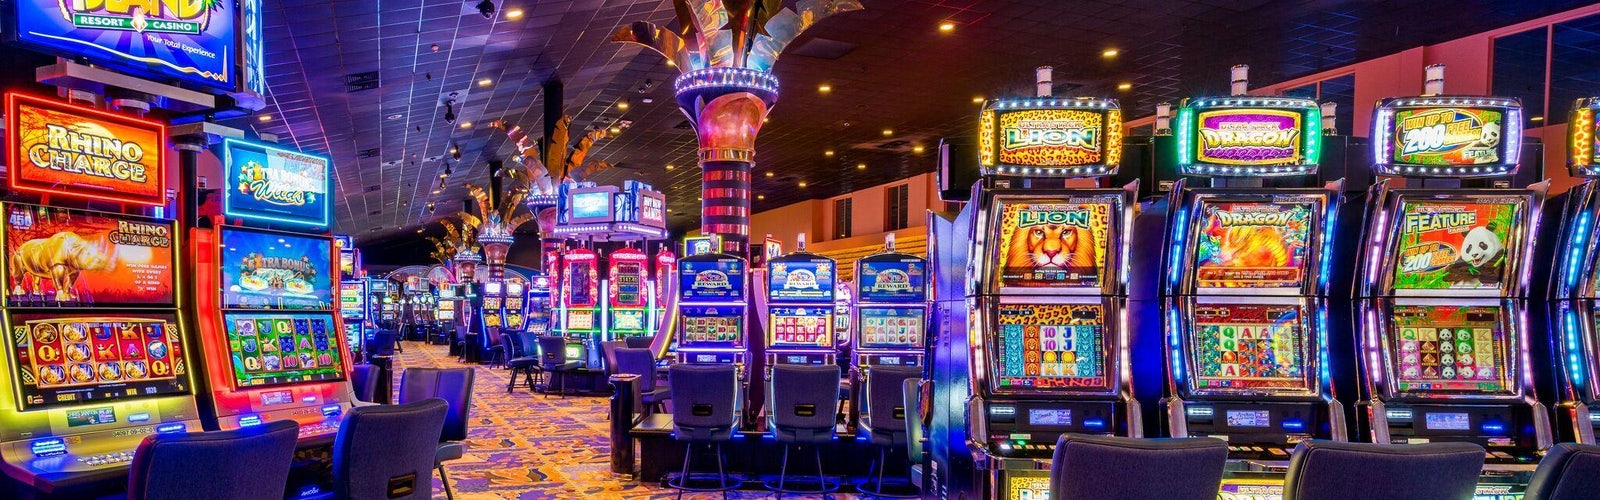 Online Casino India Find The Best Online Casinos In India Here